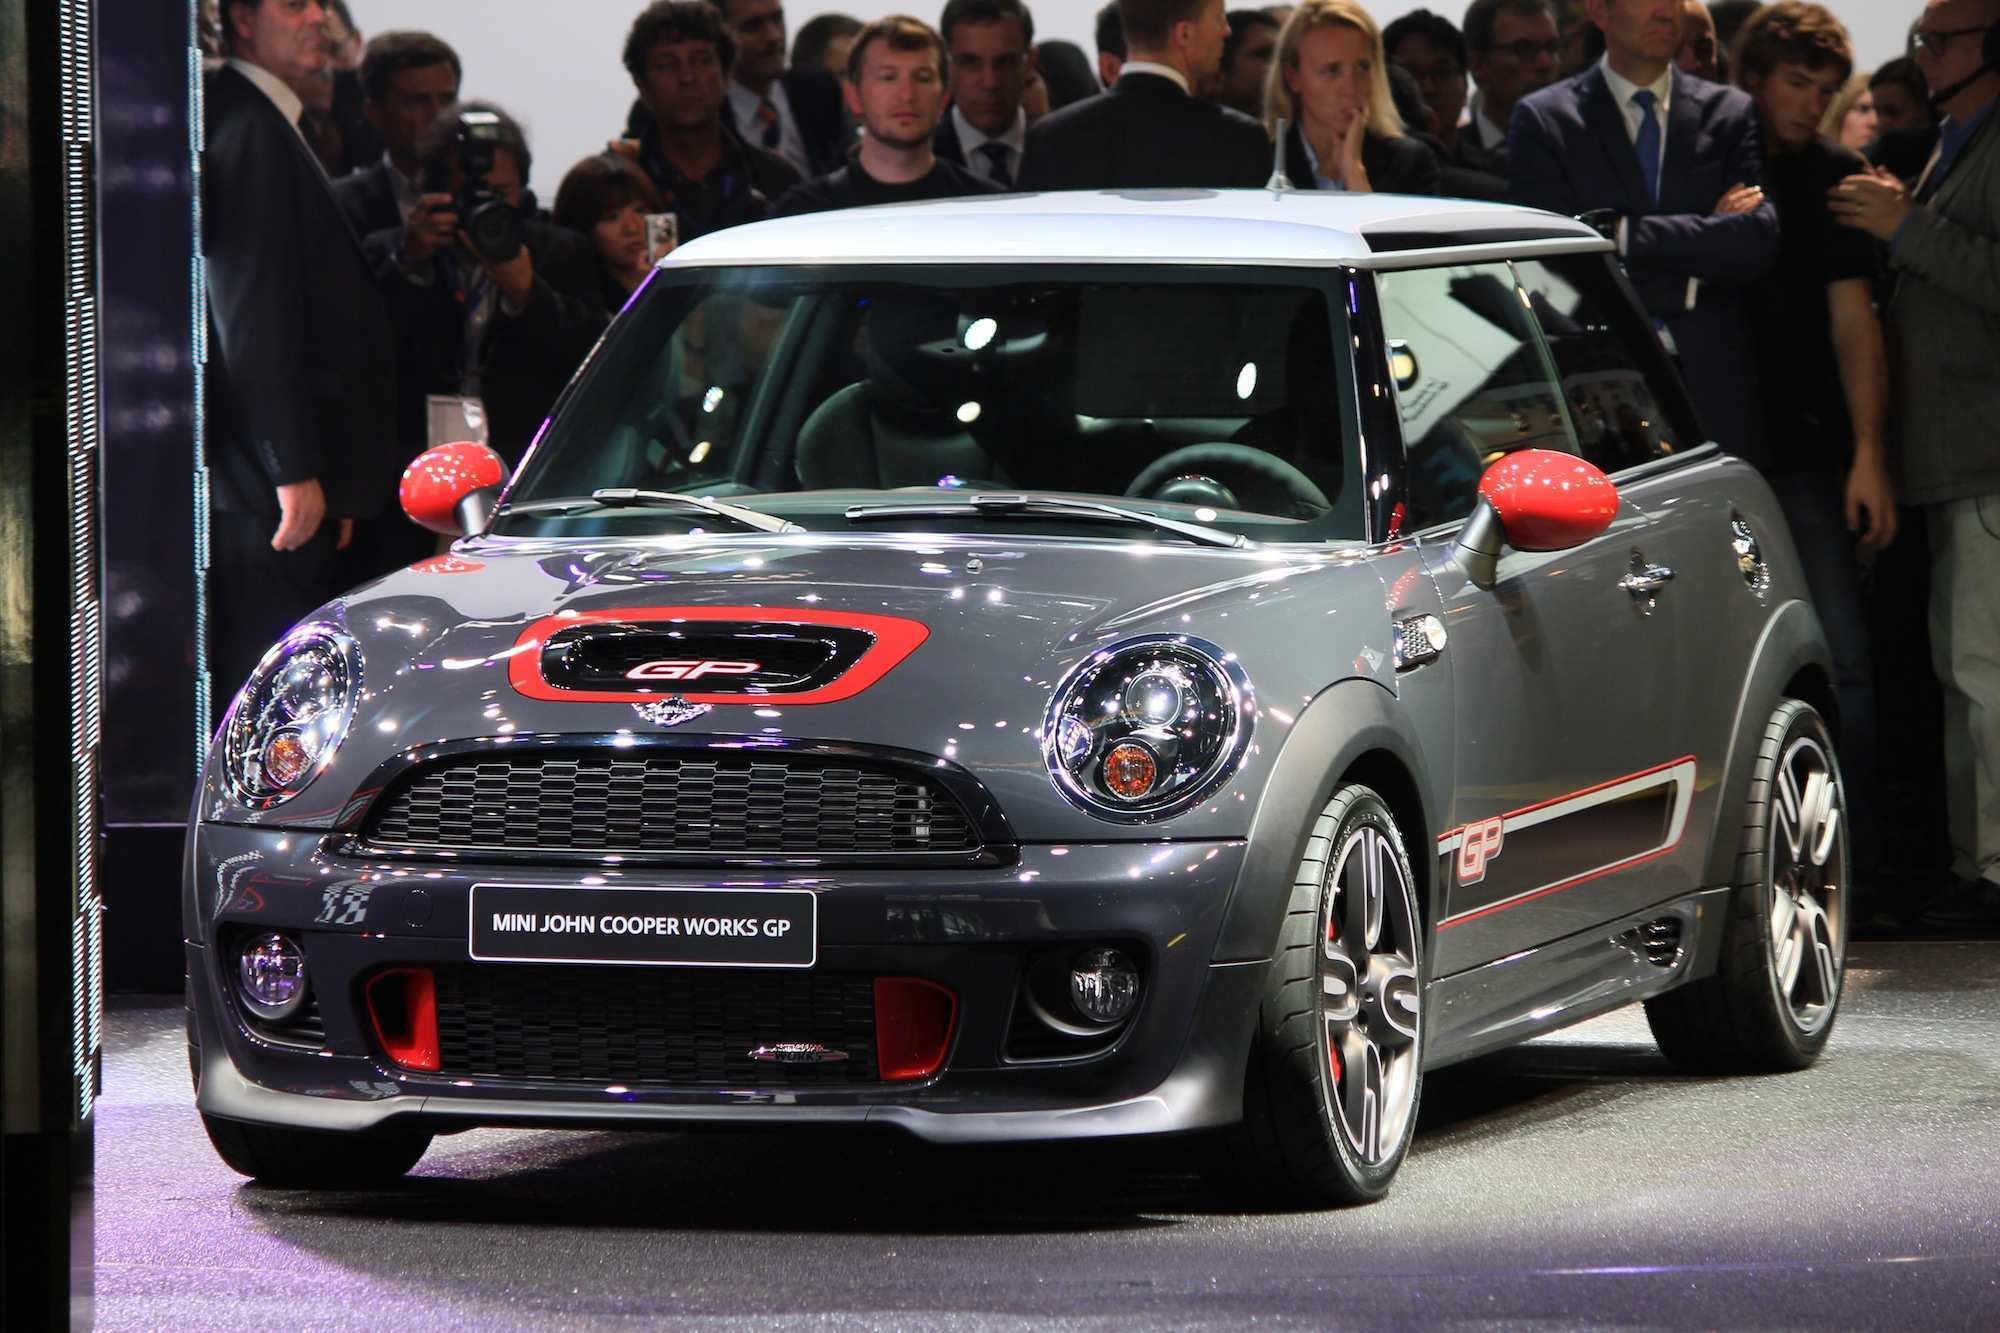 39 Best Review 2019 Mini Jcw Gp History by 2019 Mini Jcw Gp